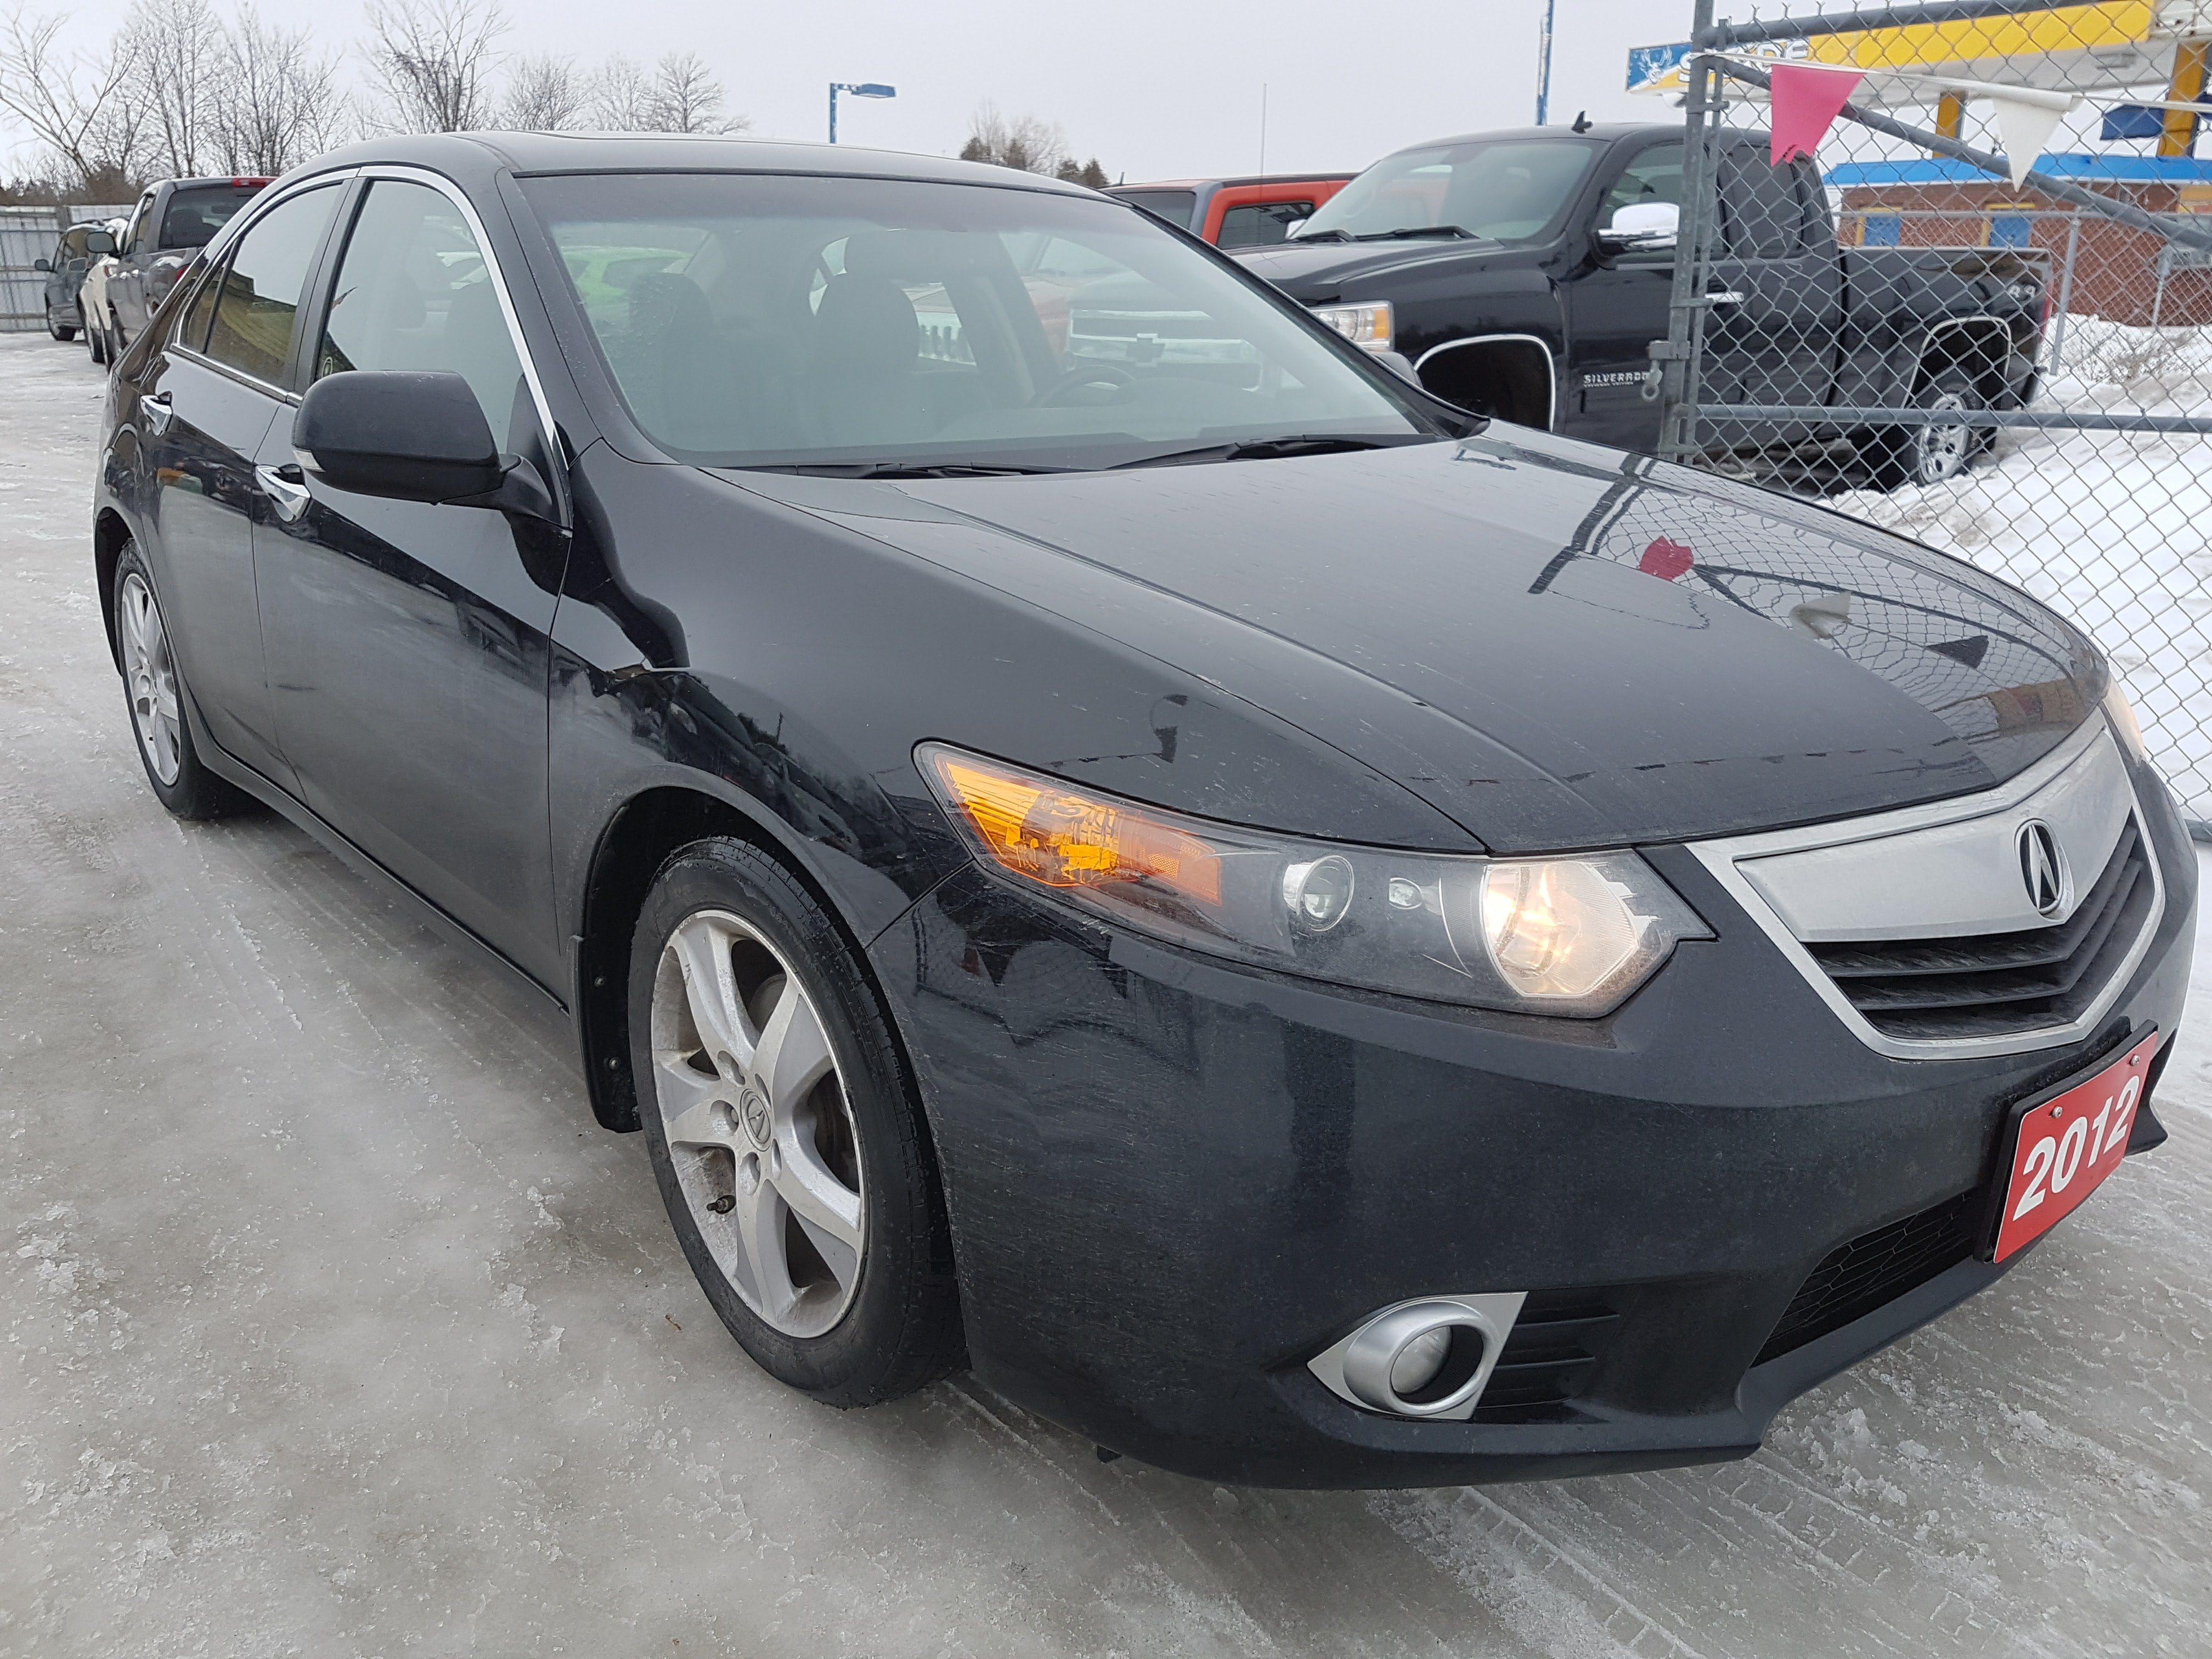 extended he img tired wanted honda we tn was for of to this warranty and nashville acura service rdx purchased blog him around specifically a car accurate local dealer run the cars long customer used time sell